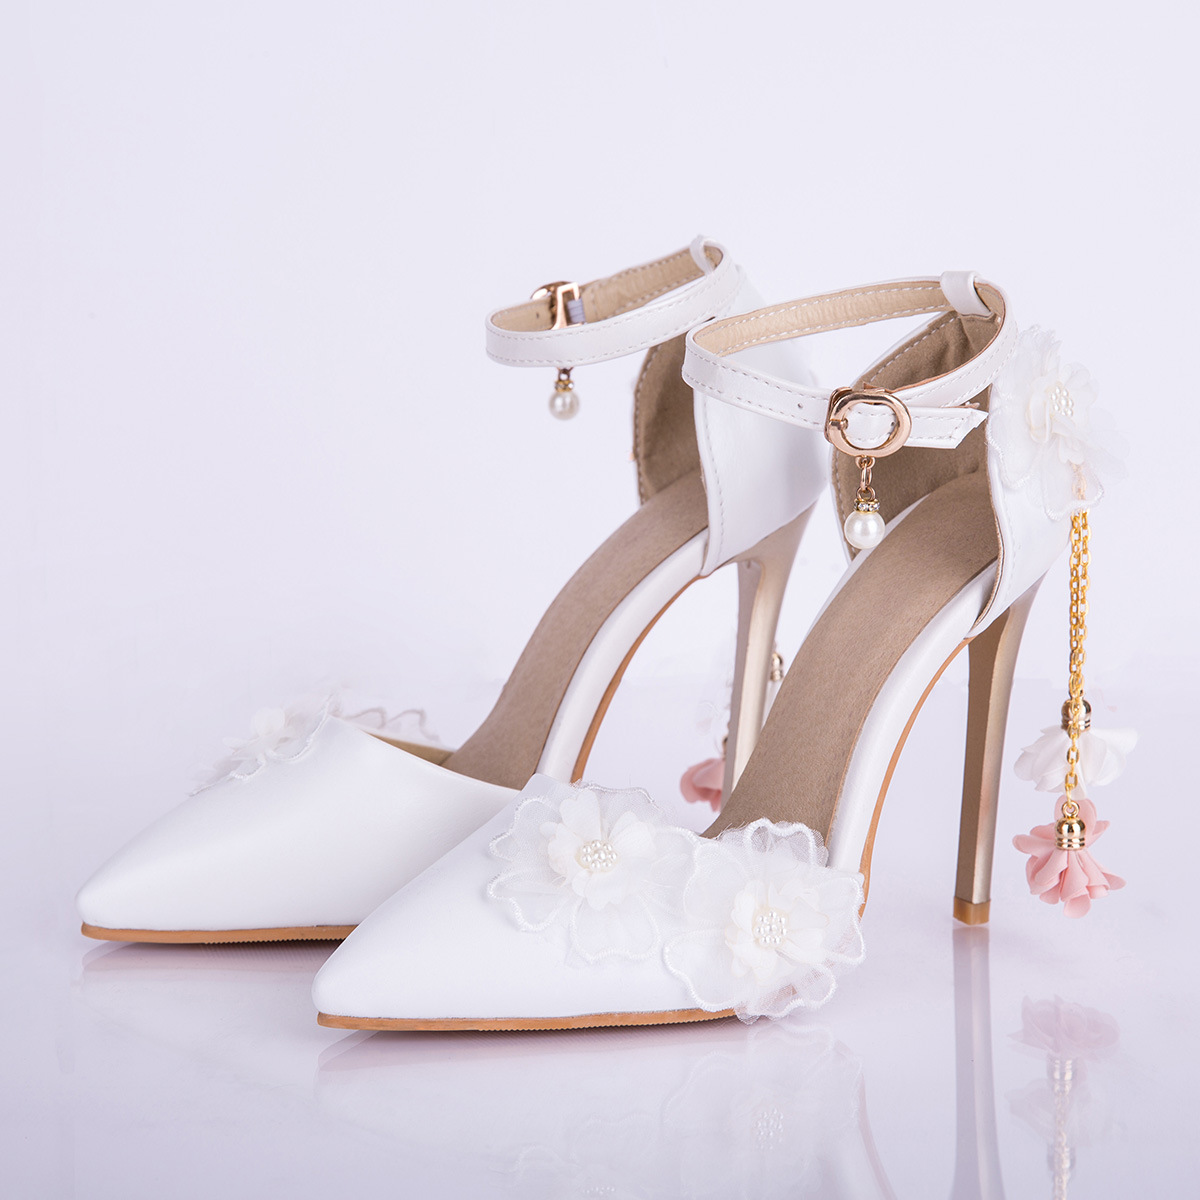 Pumps Wedding-Shoes Thin-Heels Pointed-Toe Party Elegant Female Bride-Buckle-Strap